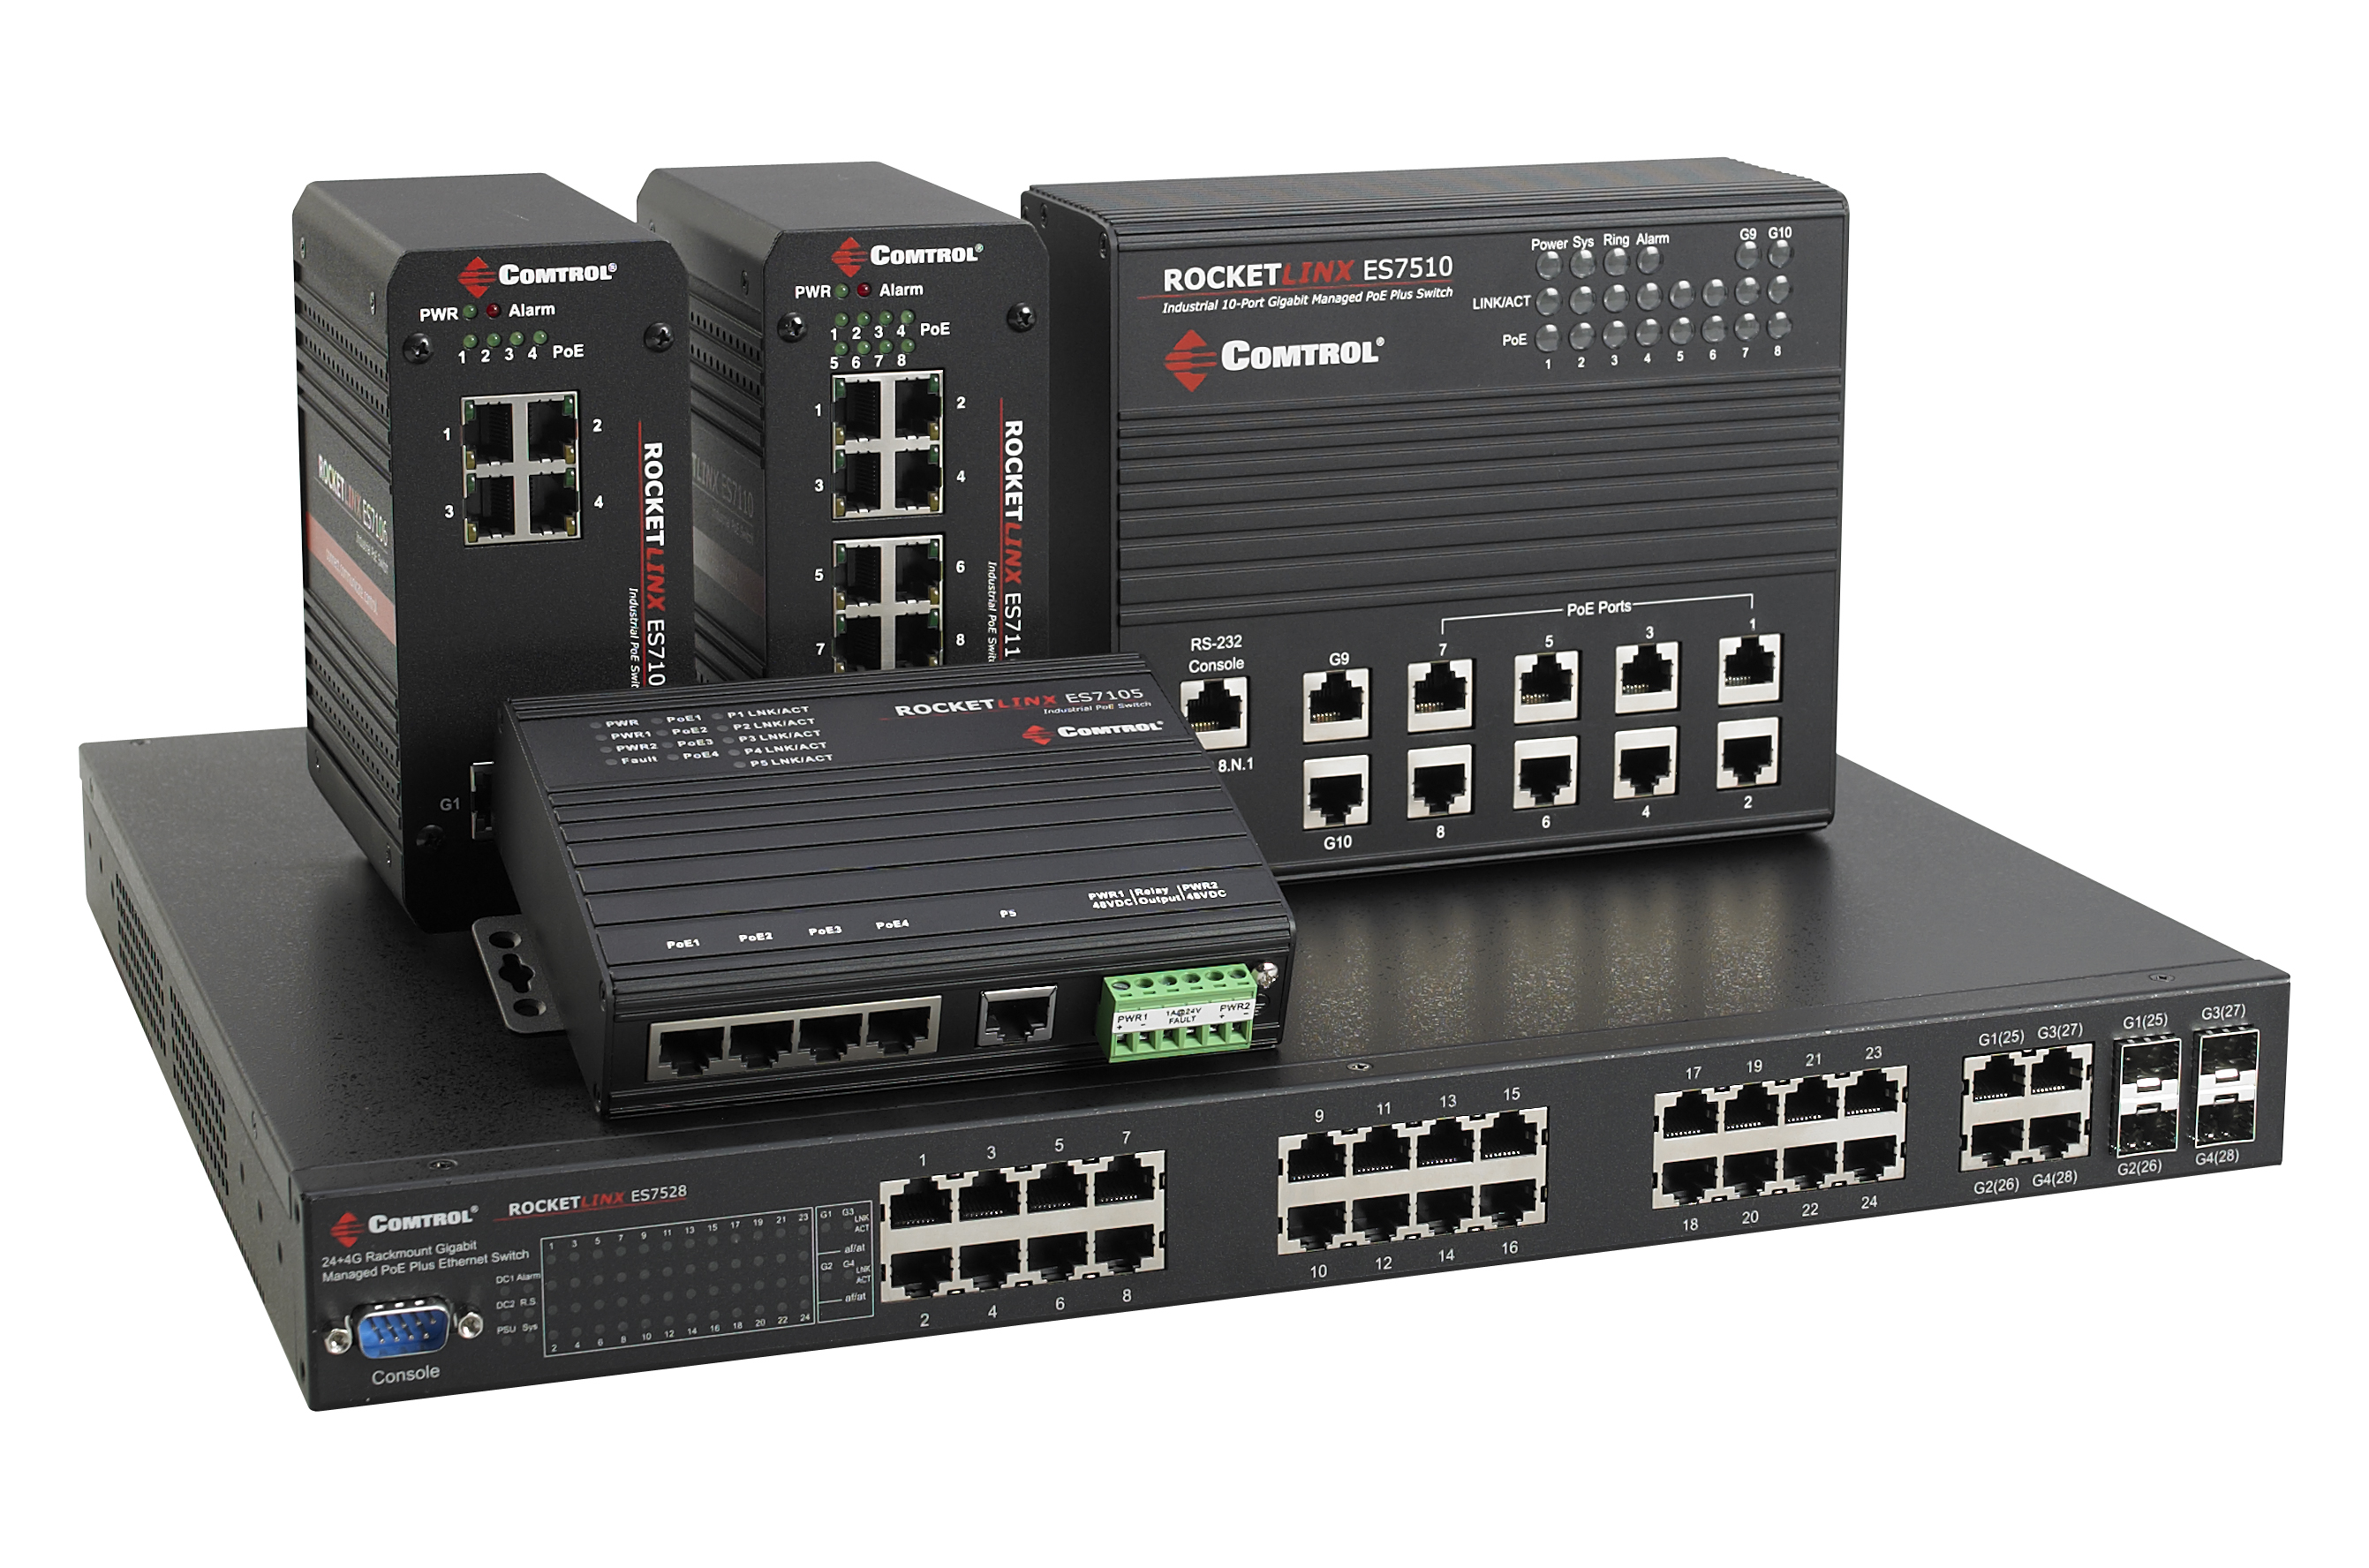 Poe Standard Rocketlinx 174 Power Over Ethernet Switches